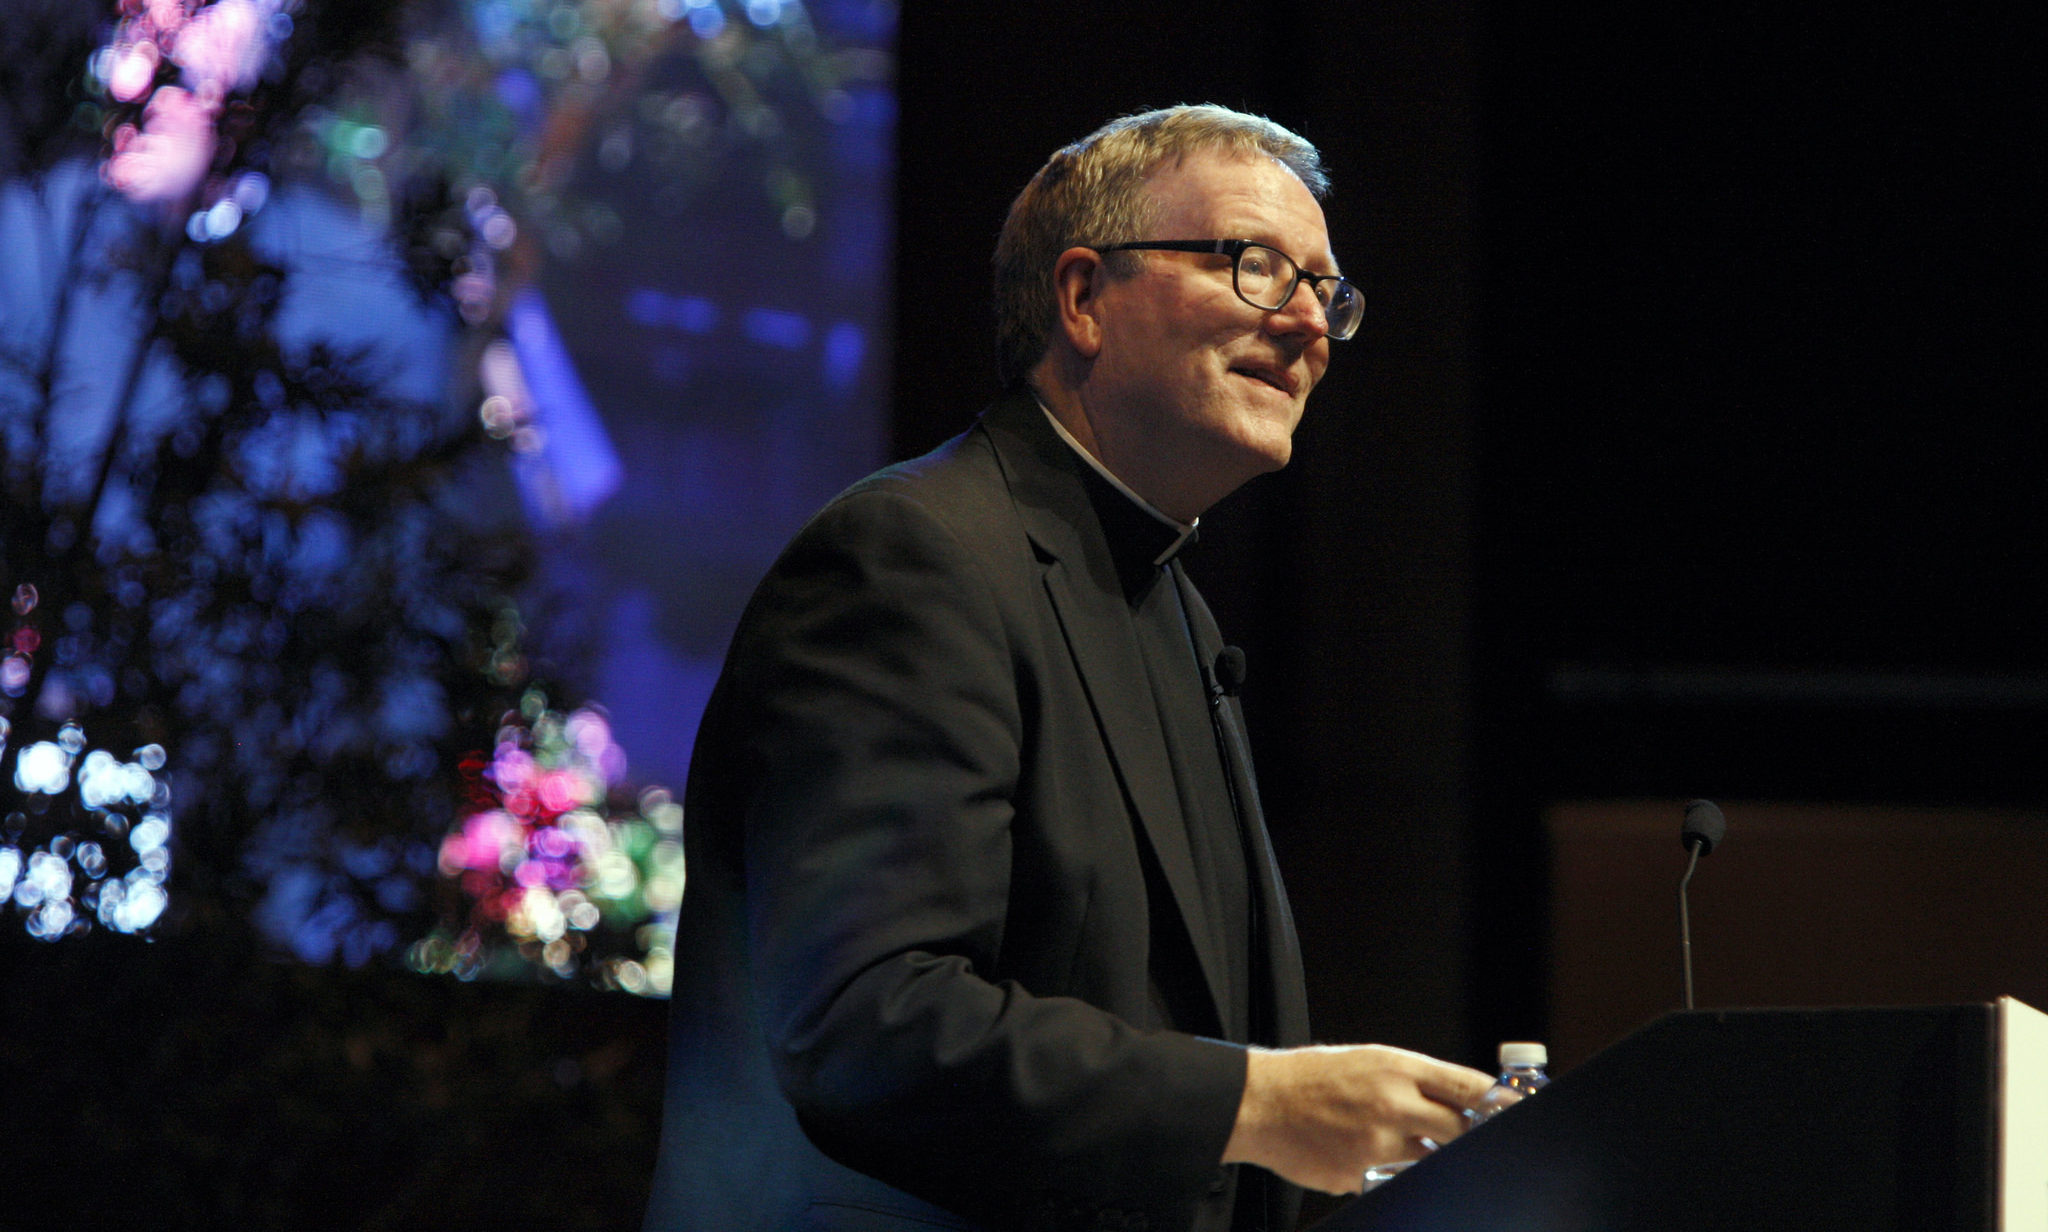 Dominican Foundation, Robert Barron